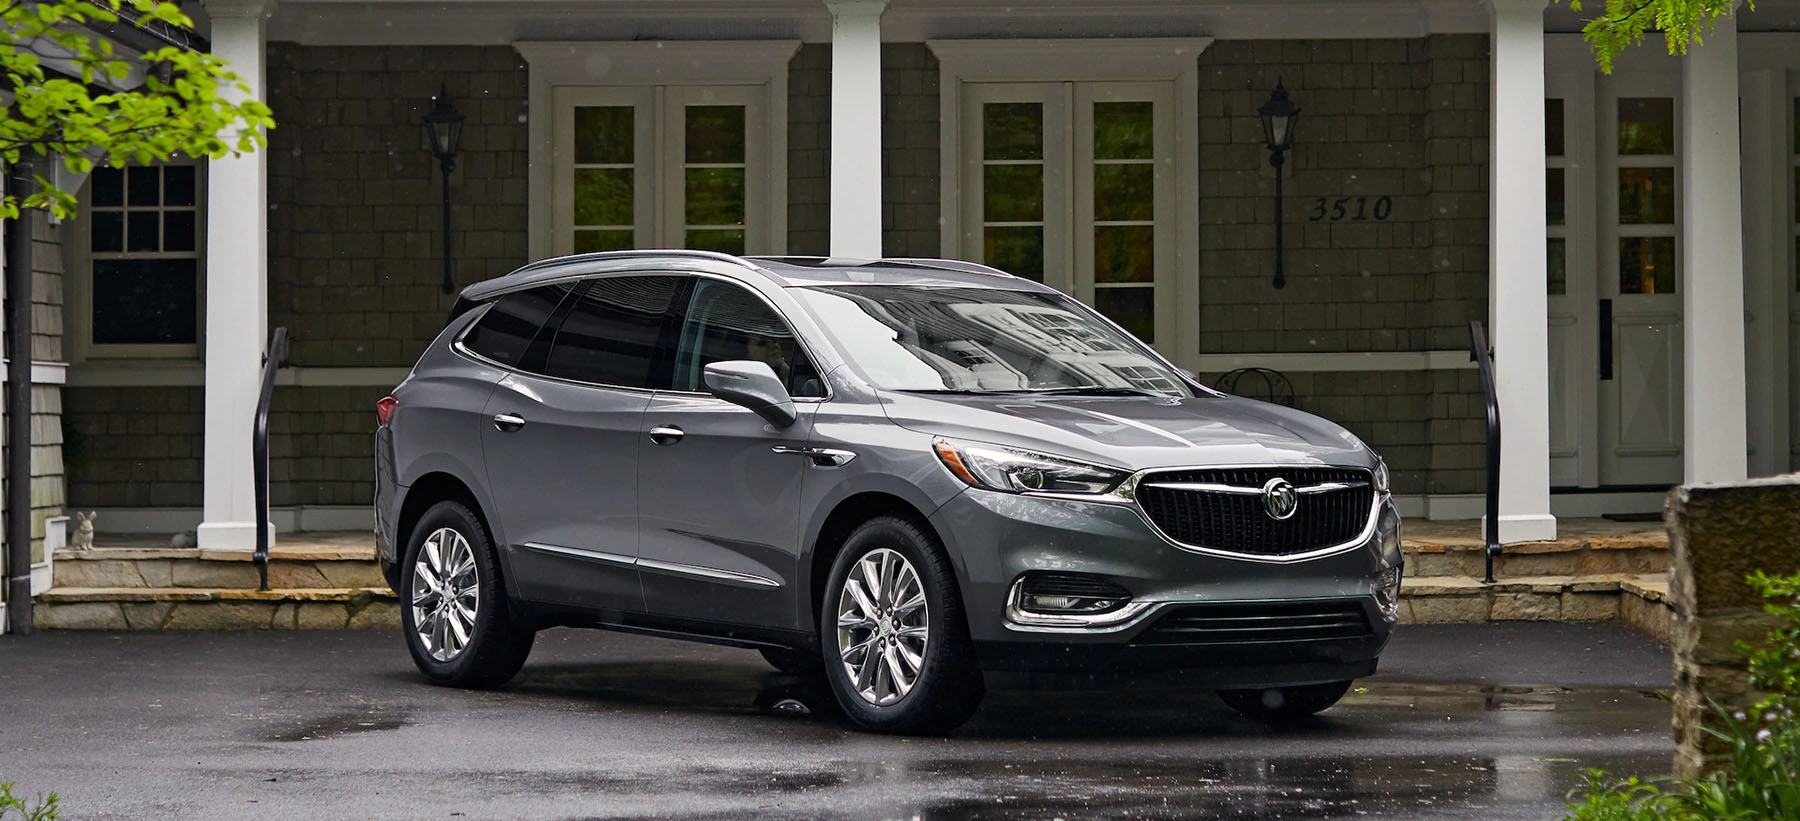 2020 Buick Enclave Appearance Main Img